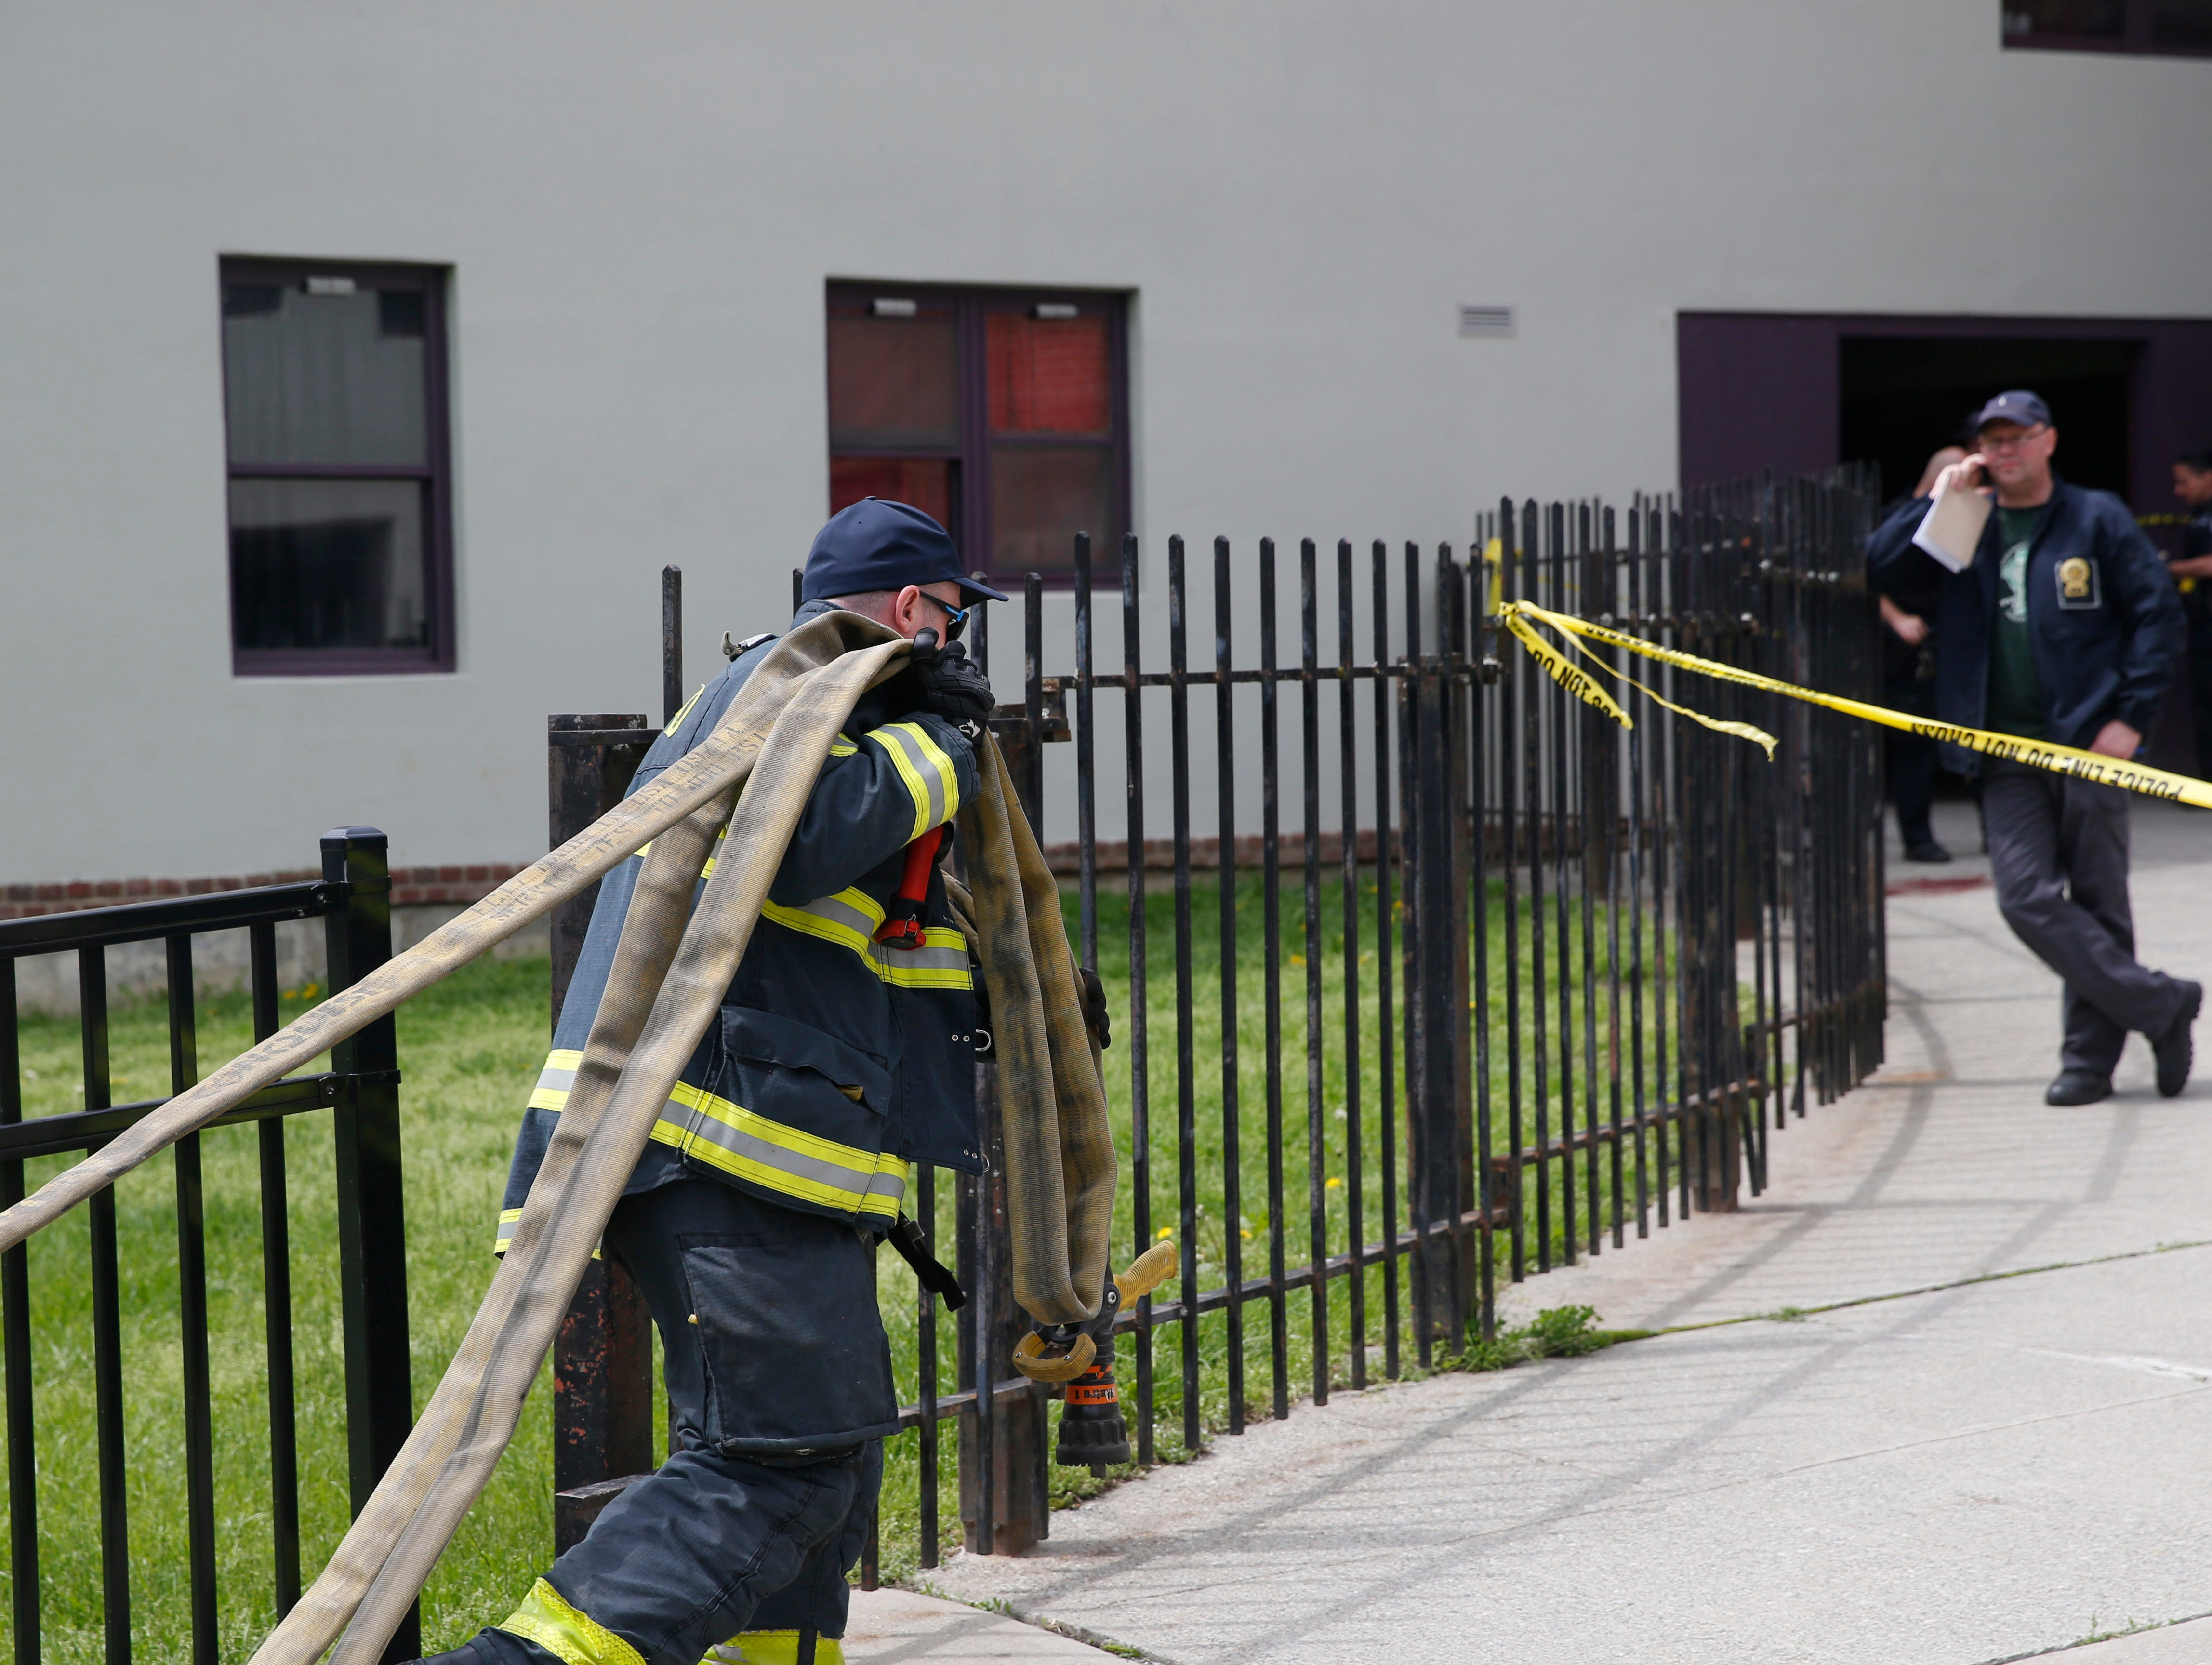 City of Poughkeepsie Fire Department arrives to clean blood spilled from a shooting that occurred at the Hudson Gardens Apartments in the City of Poughkeepsie on May 7, 2019.